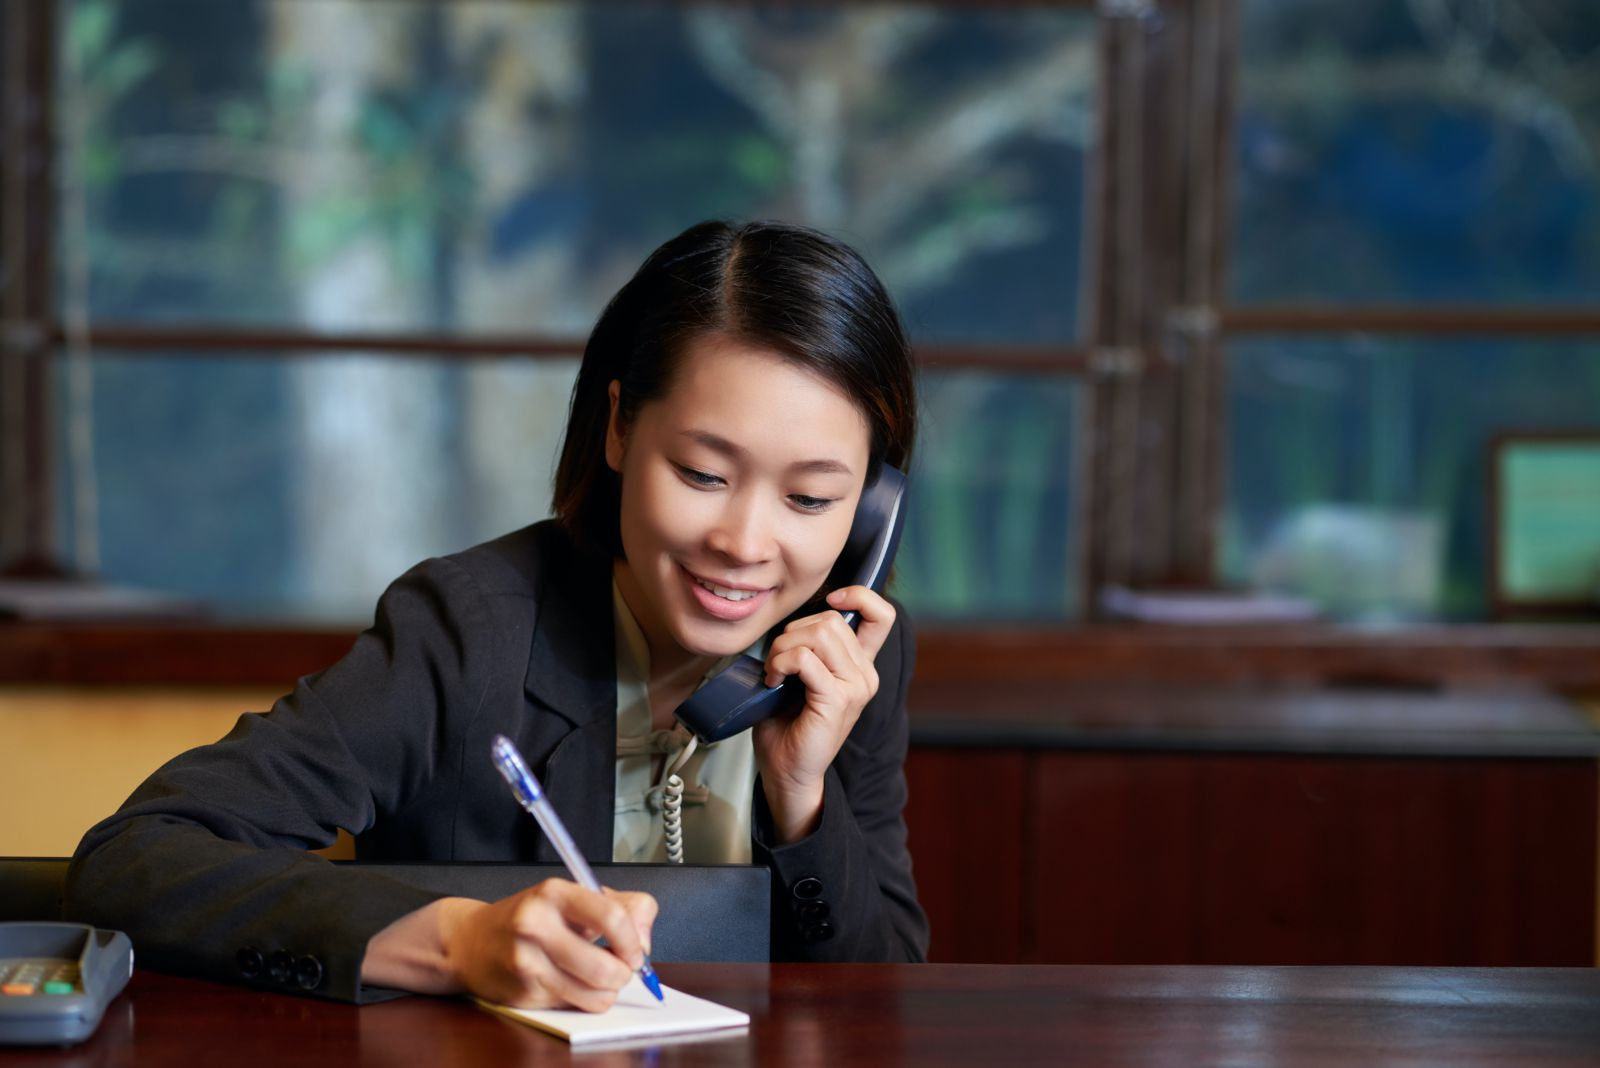 A hotel receptionist talking on the phone